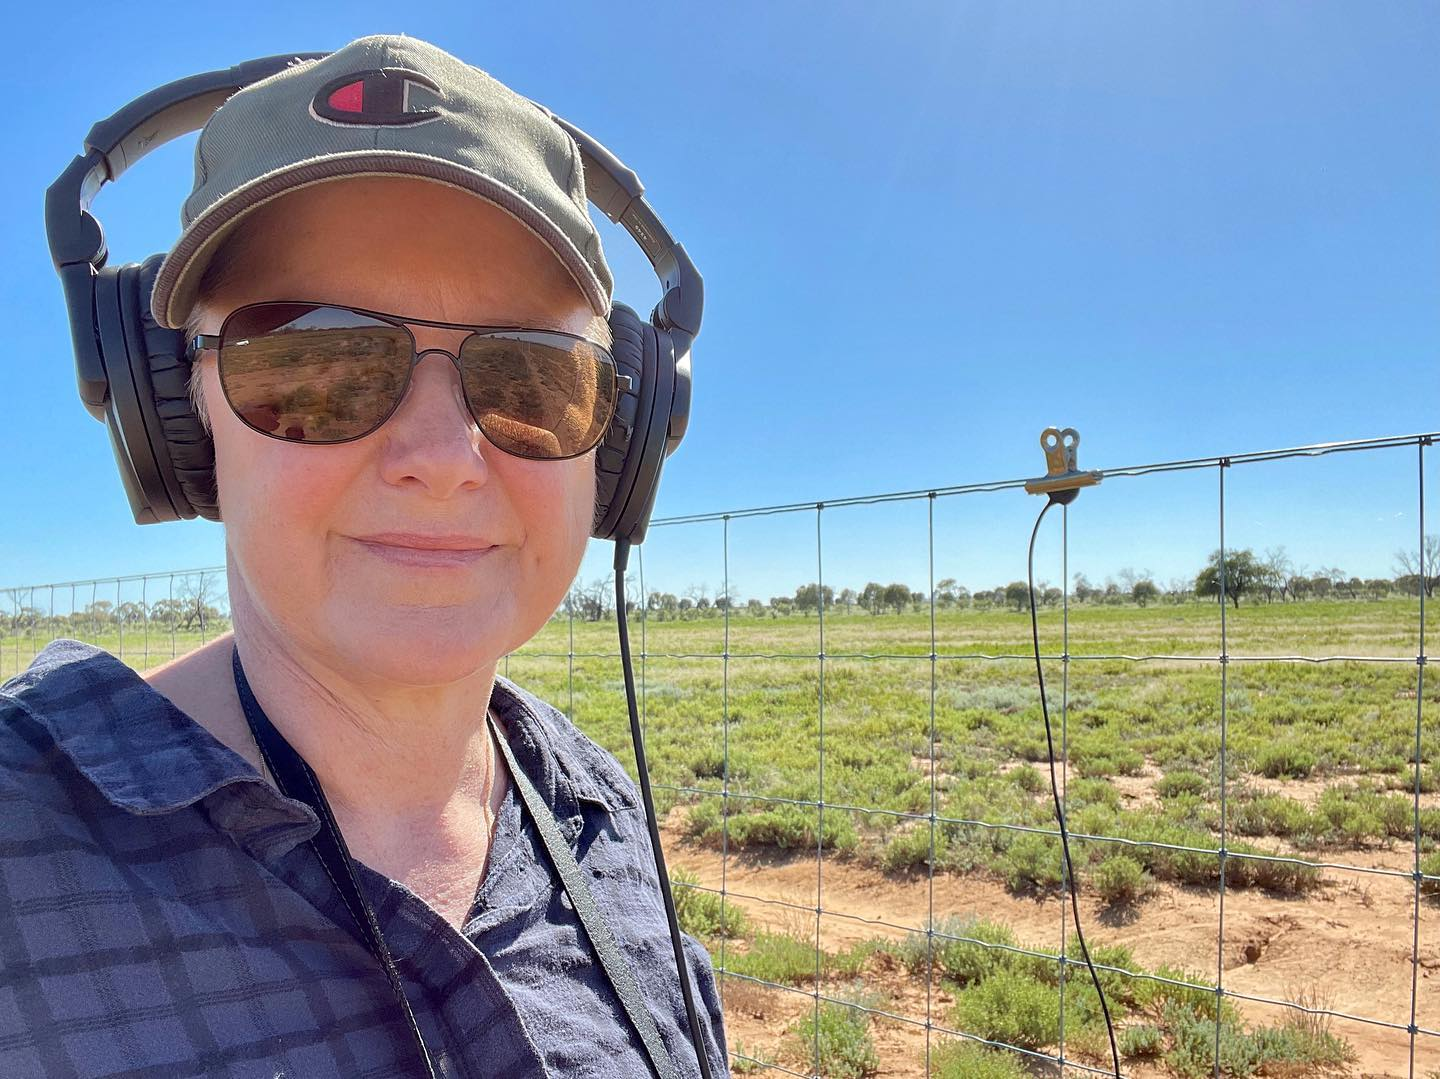 Using contact mics on the kangaroo exclusion fencing